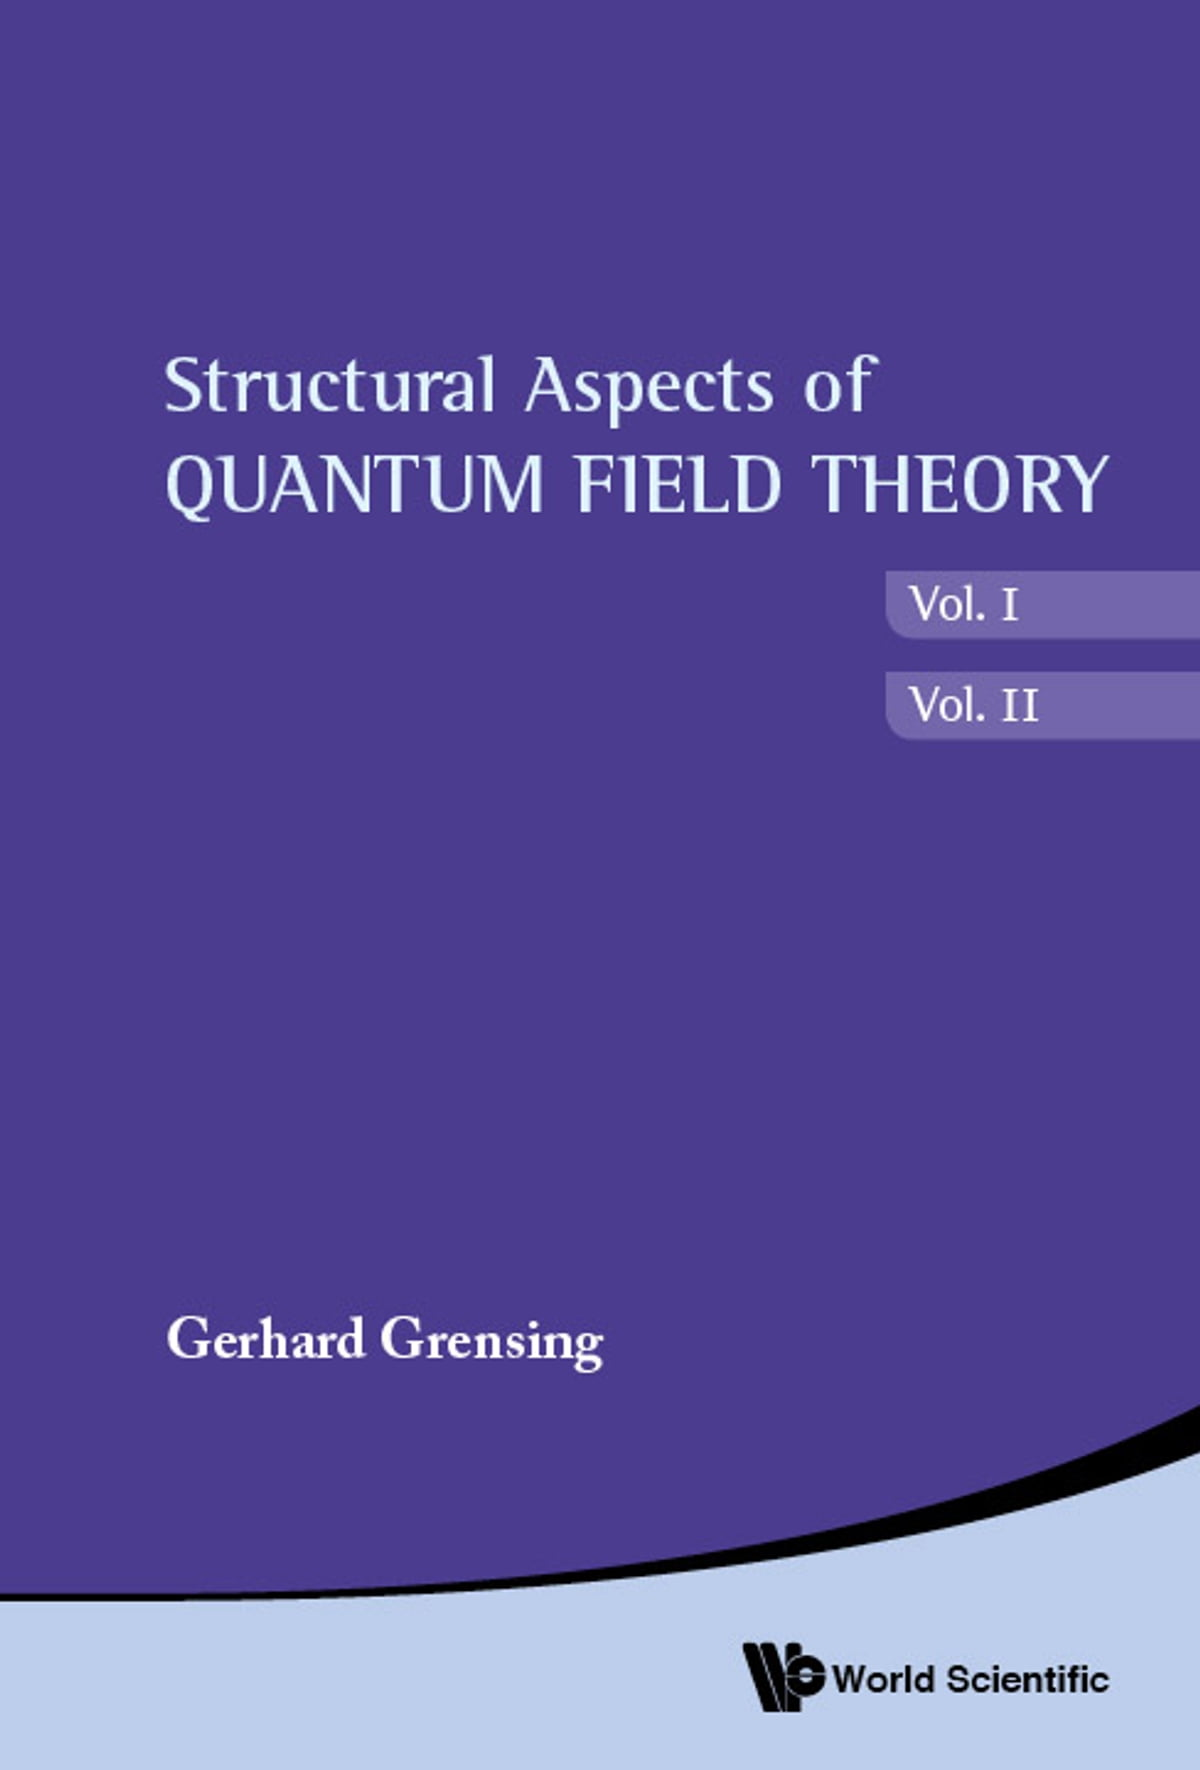 Structural Aspects of Quantum Field Theory and Noncommutative Geometry  eBook by Gerhard Grensing - 9789814472715 | Rakuten Kobo